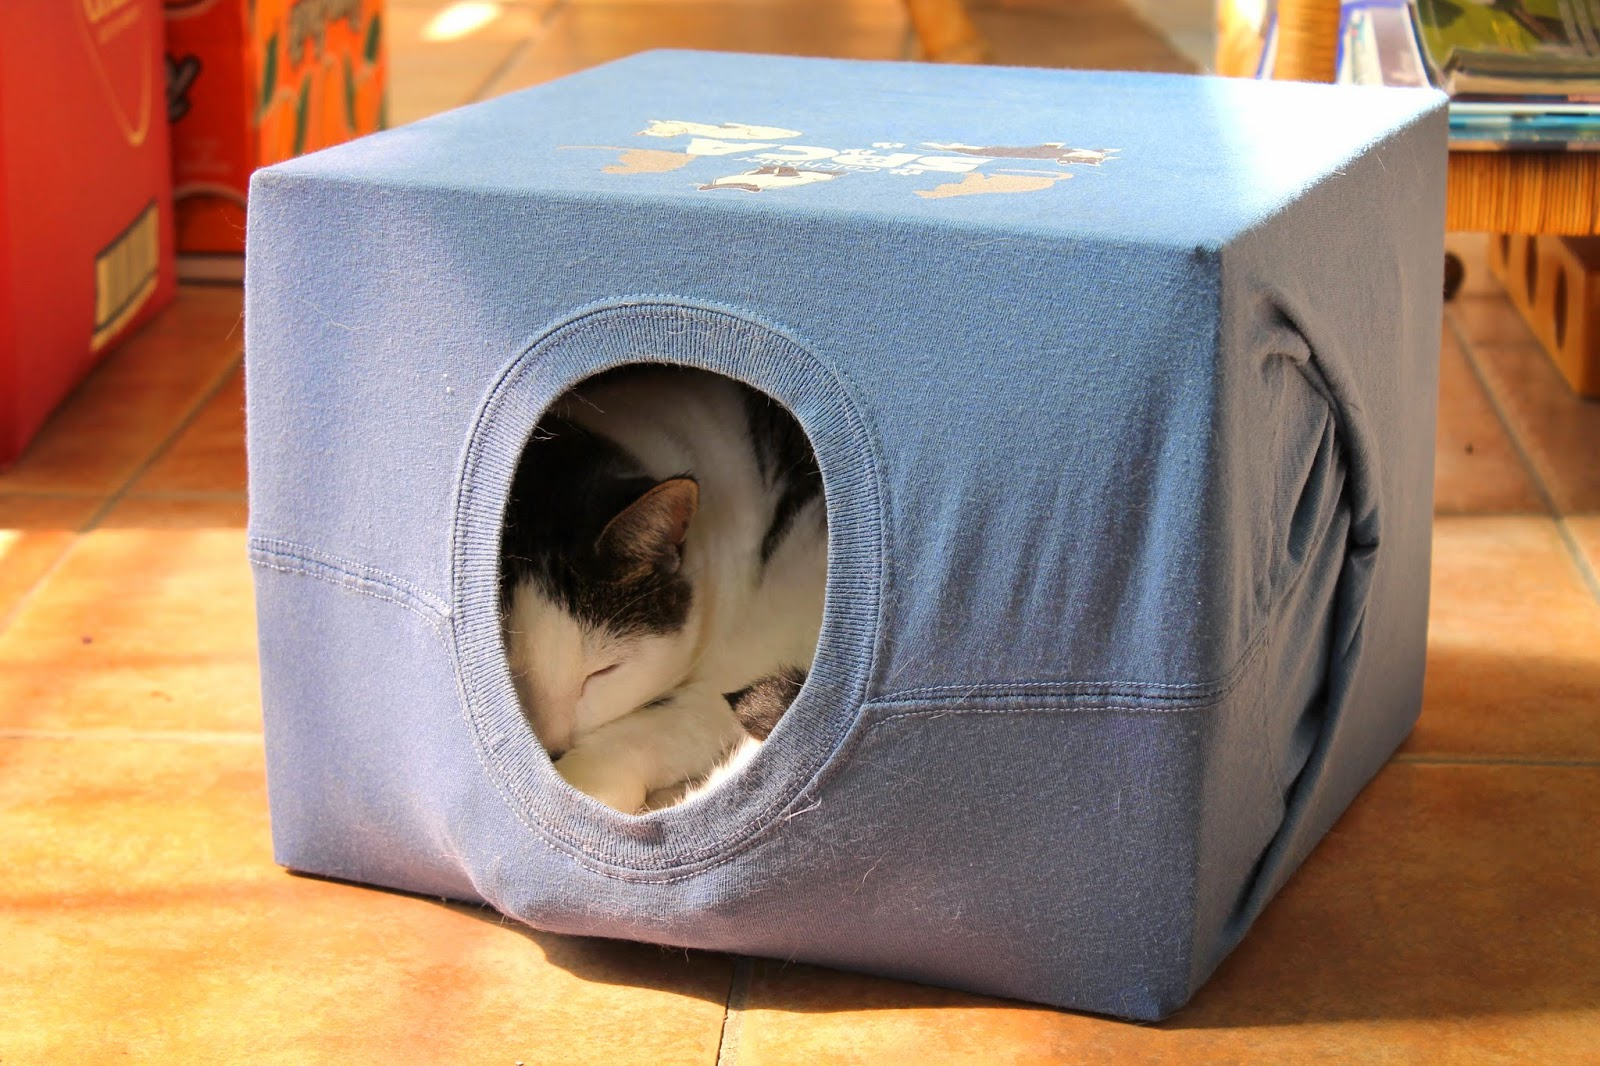 First You Re Going To Cut Off The Top Flaps Of Cardboard Box And Find A Blanket Or Cushion Fit In Bottom Make It Cozy